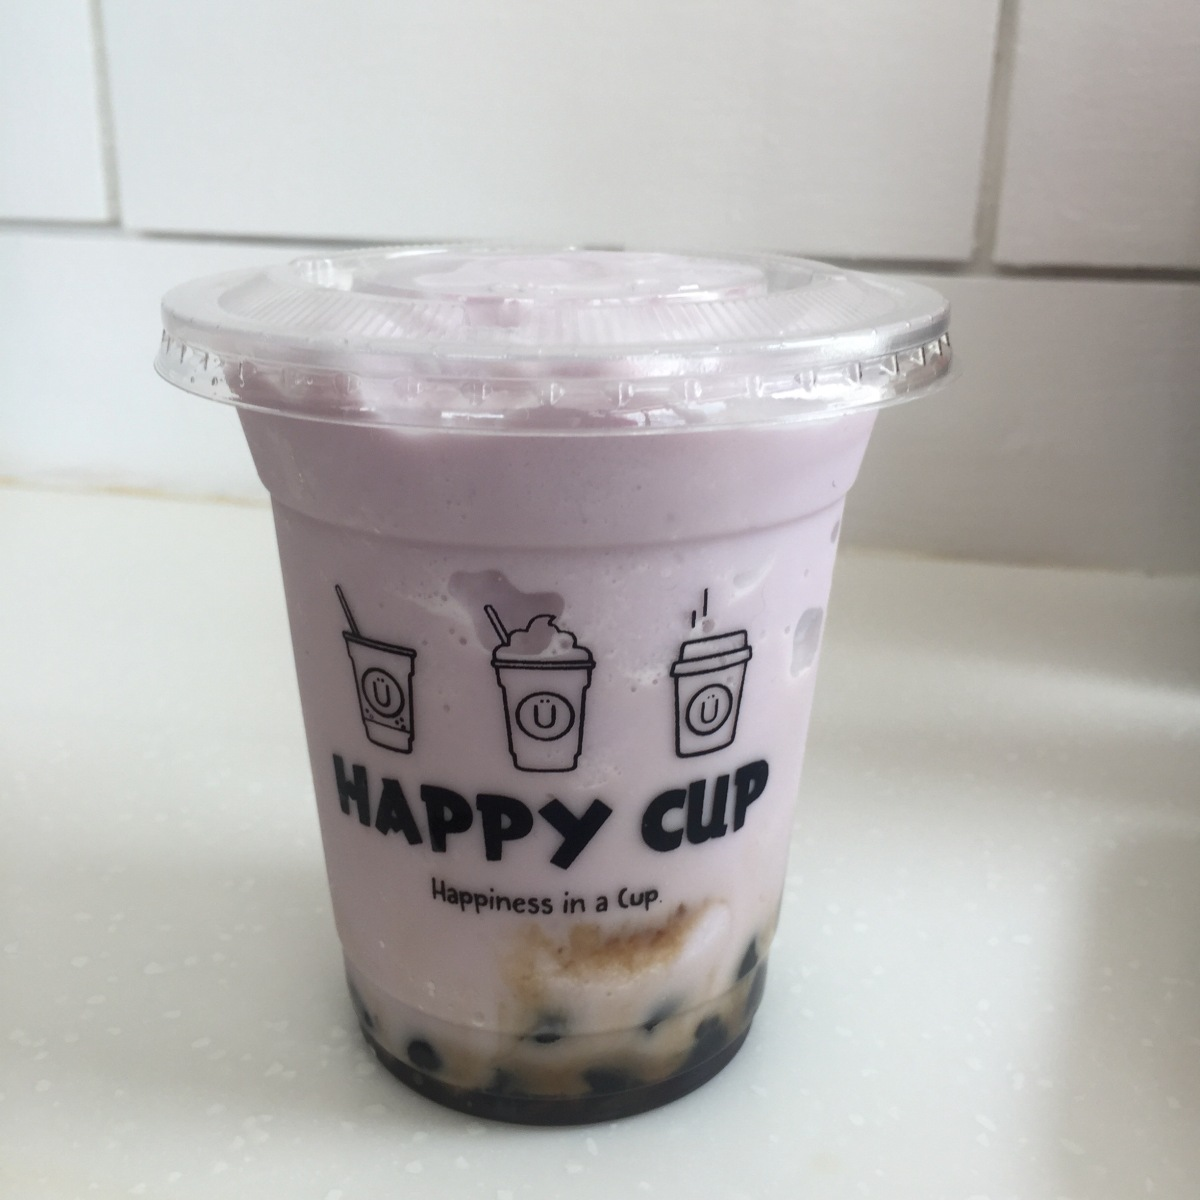 My not-so-Happy Cup experience